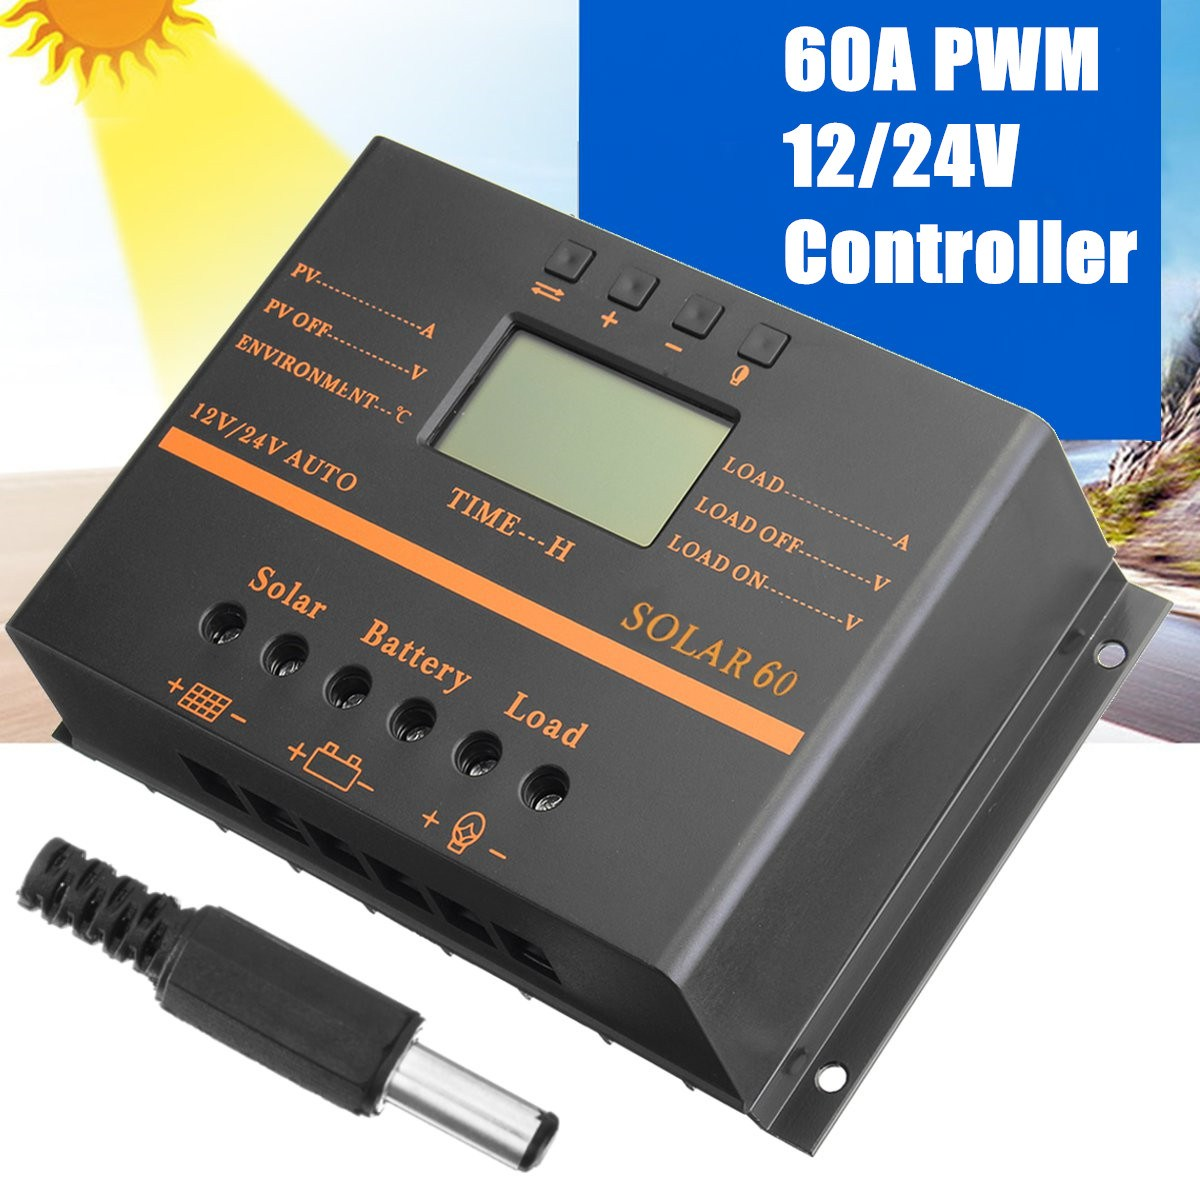 60A New Solar Controller 5V USB charger for mobile phone 12V 24V PV panel Battery Charge Controller Solar system Home indoor use tuv portable solar panel 12v 50w solar battery charger car caravan camping solar light lamp phone charger factory price